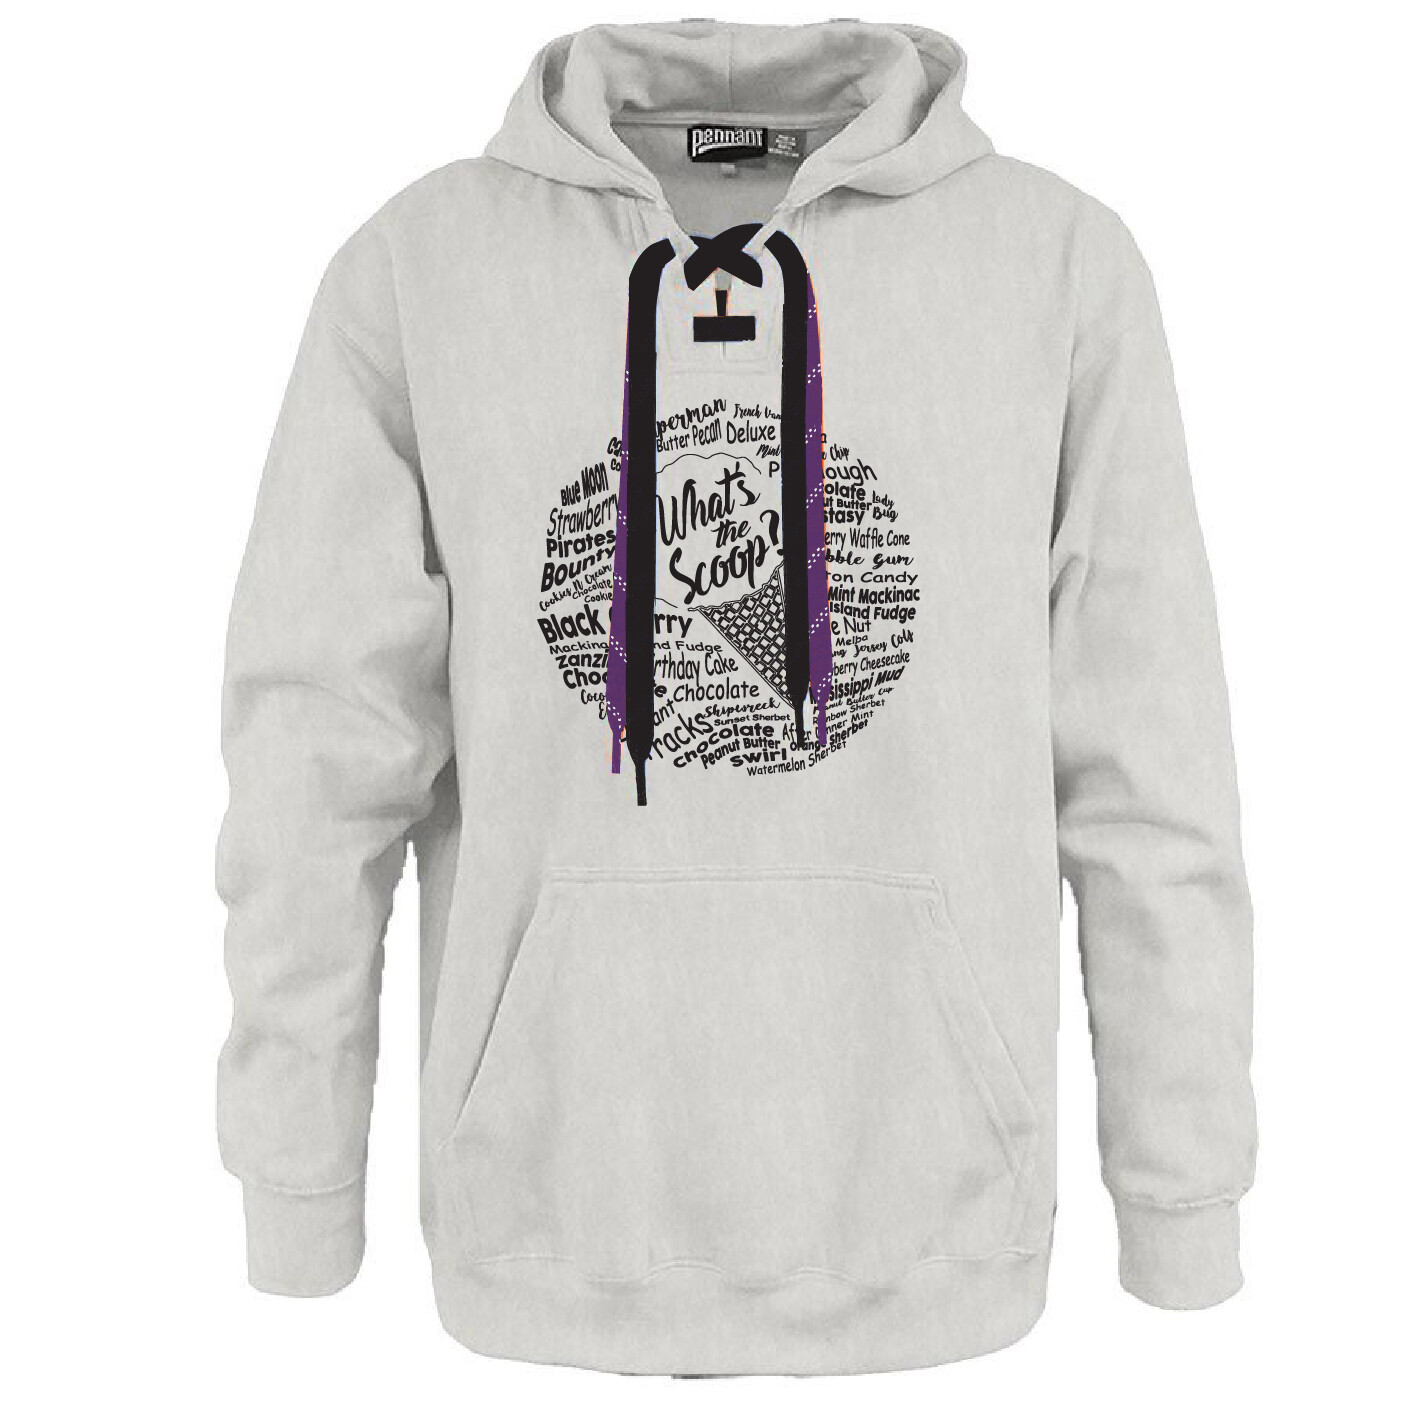 What's The Scoop? - Here For Good Minnesota Hockey Lace Hoodie #HEREFORGOODMN